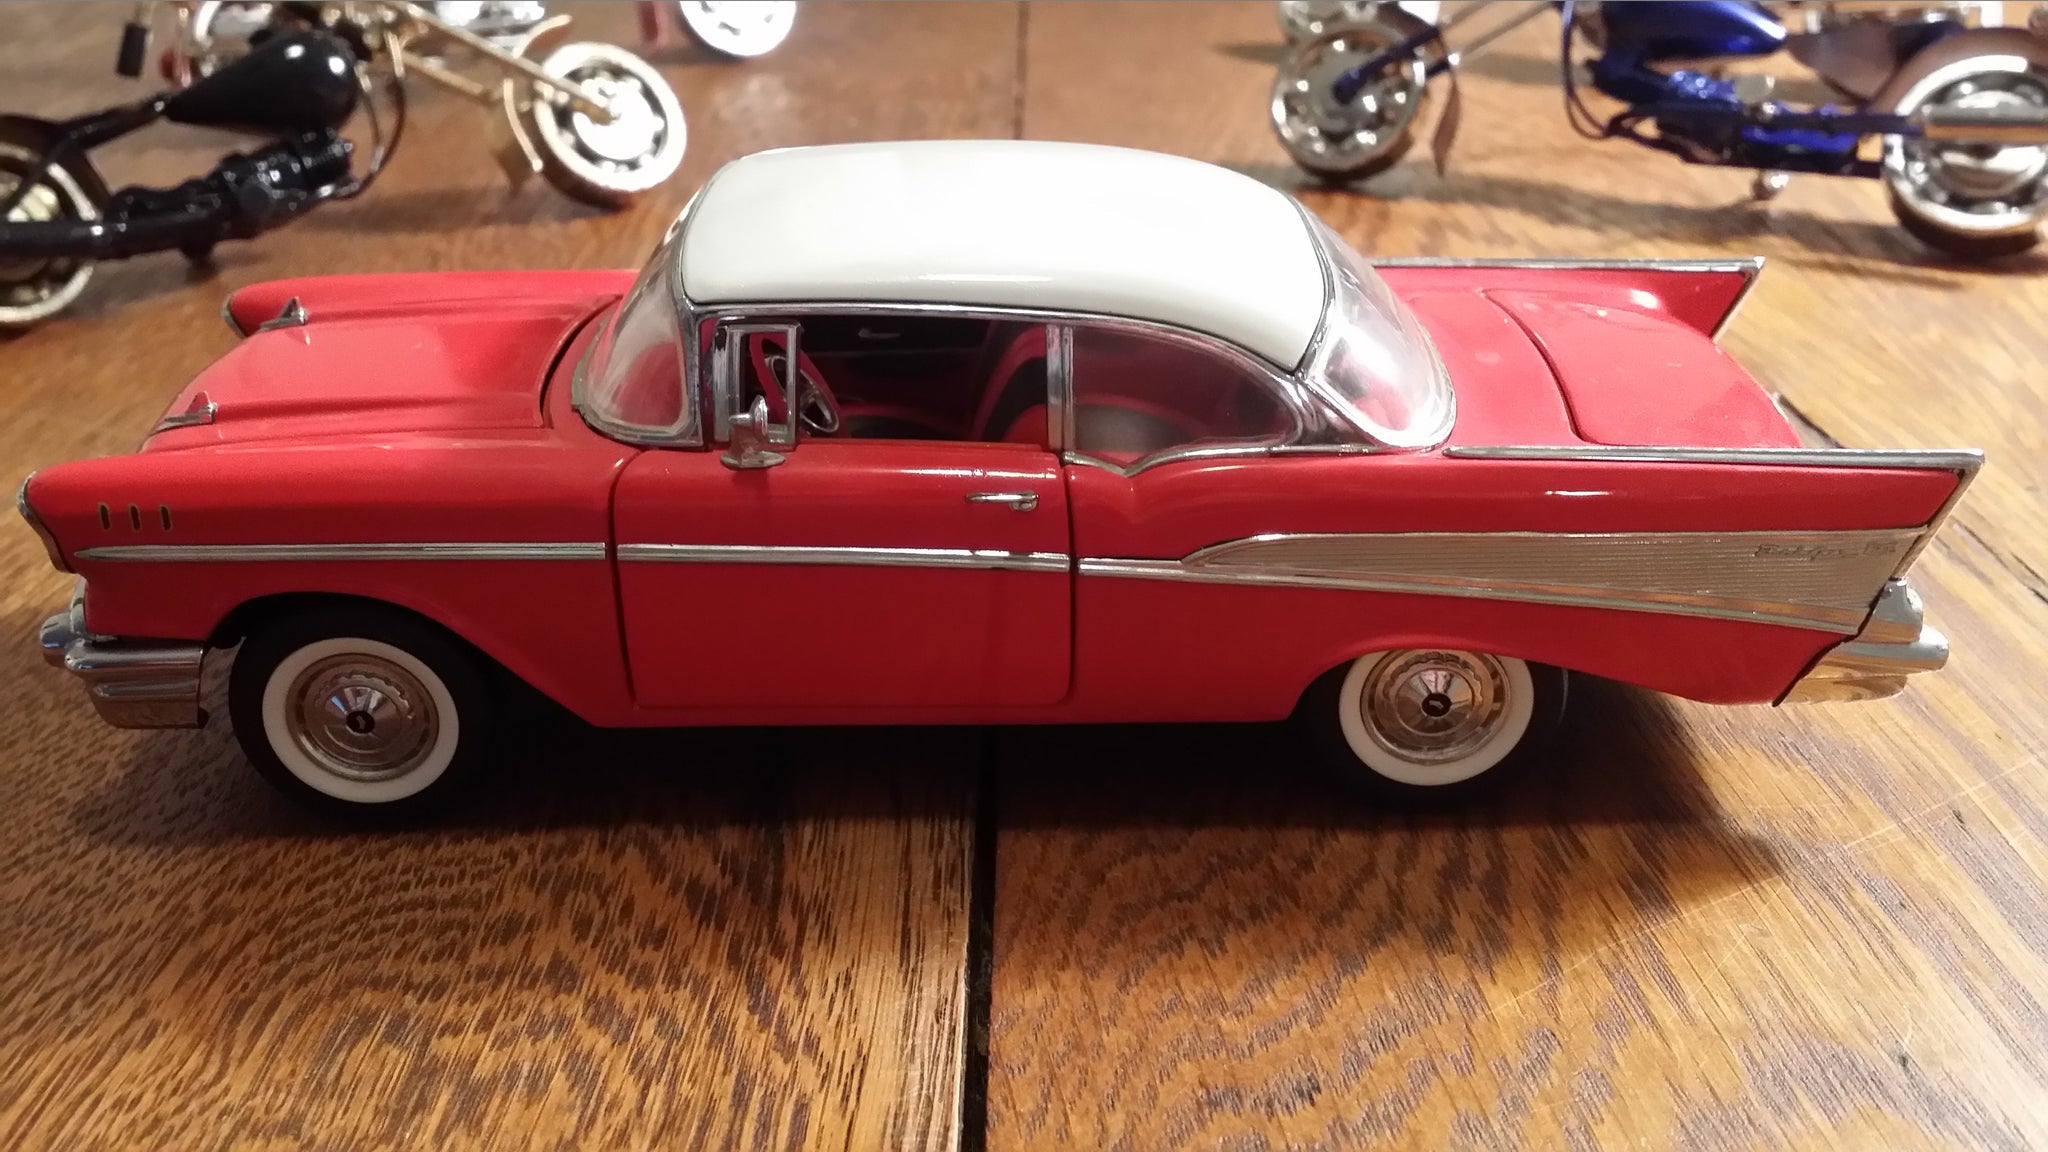 1957 Chevy Bel Air 2 Door Hardtop Chevrolet V8 Rides Drives Load Image Into Gallery Viewer